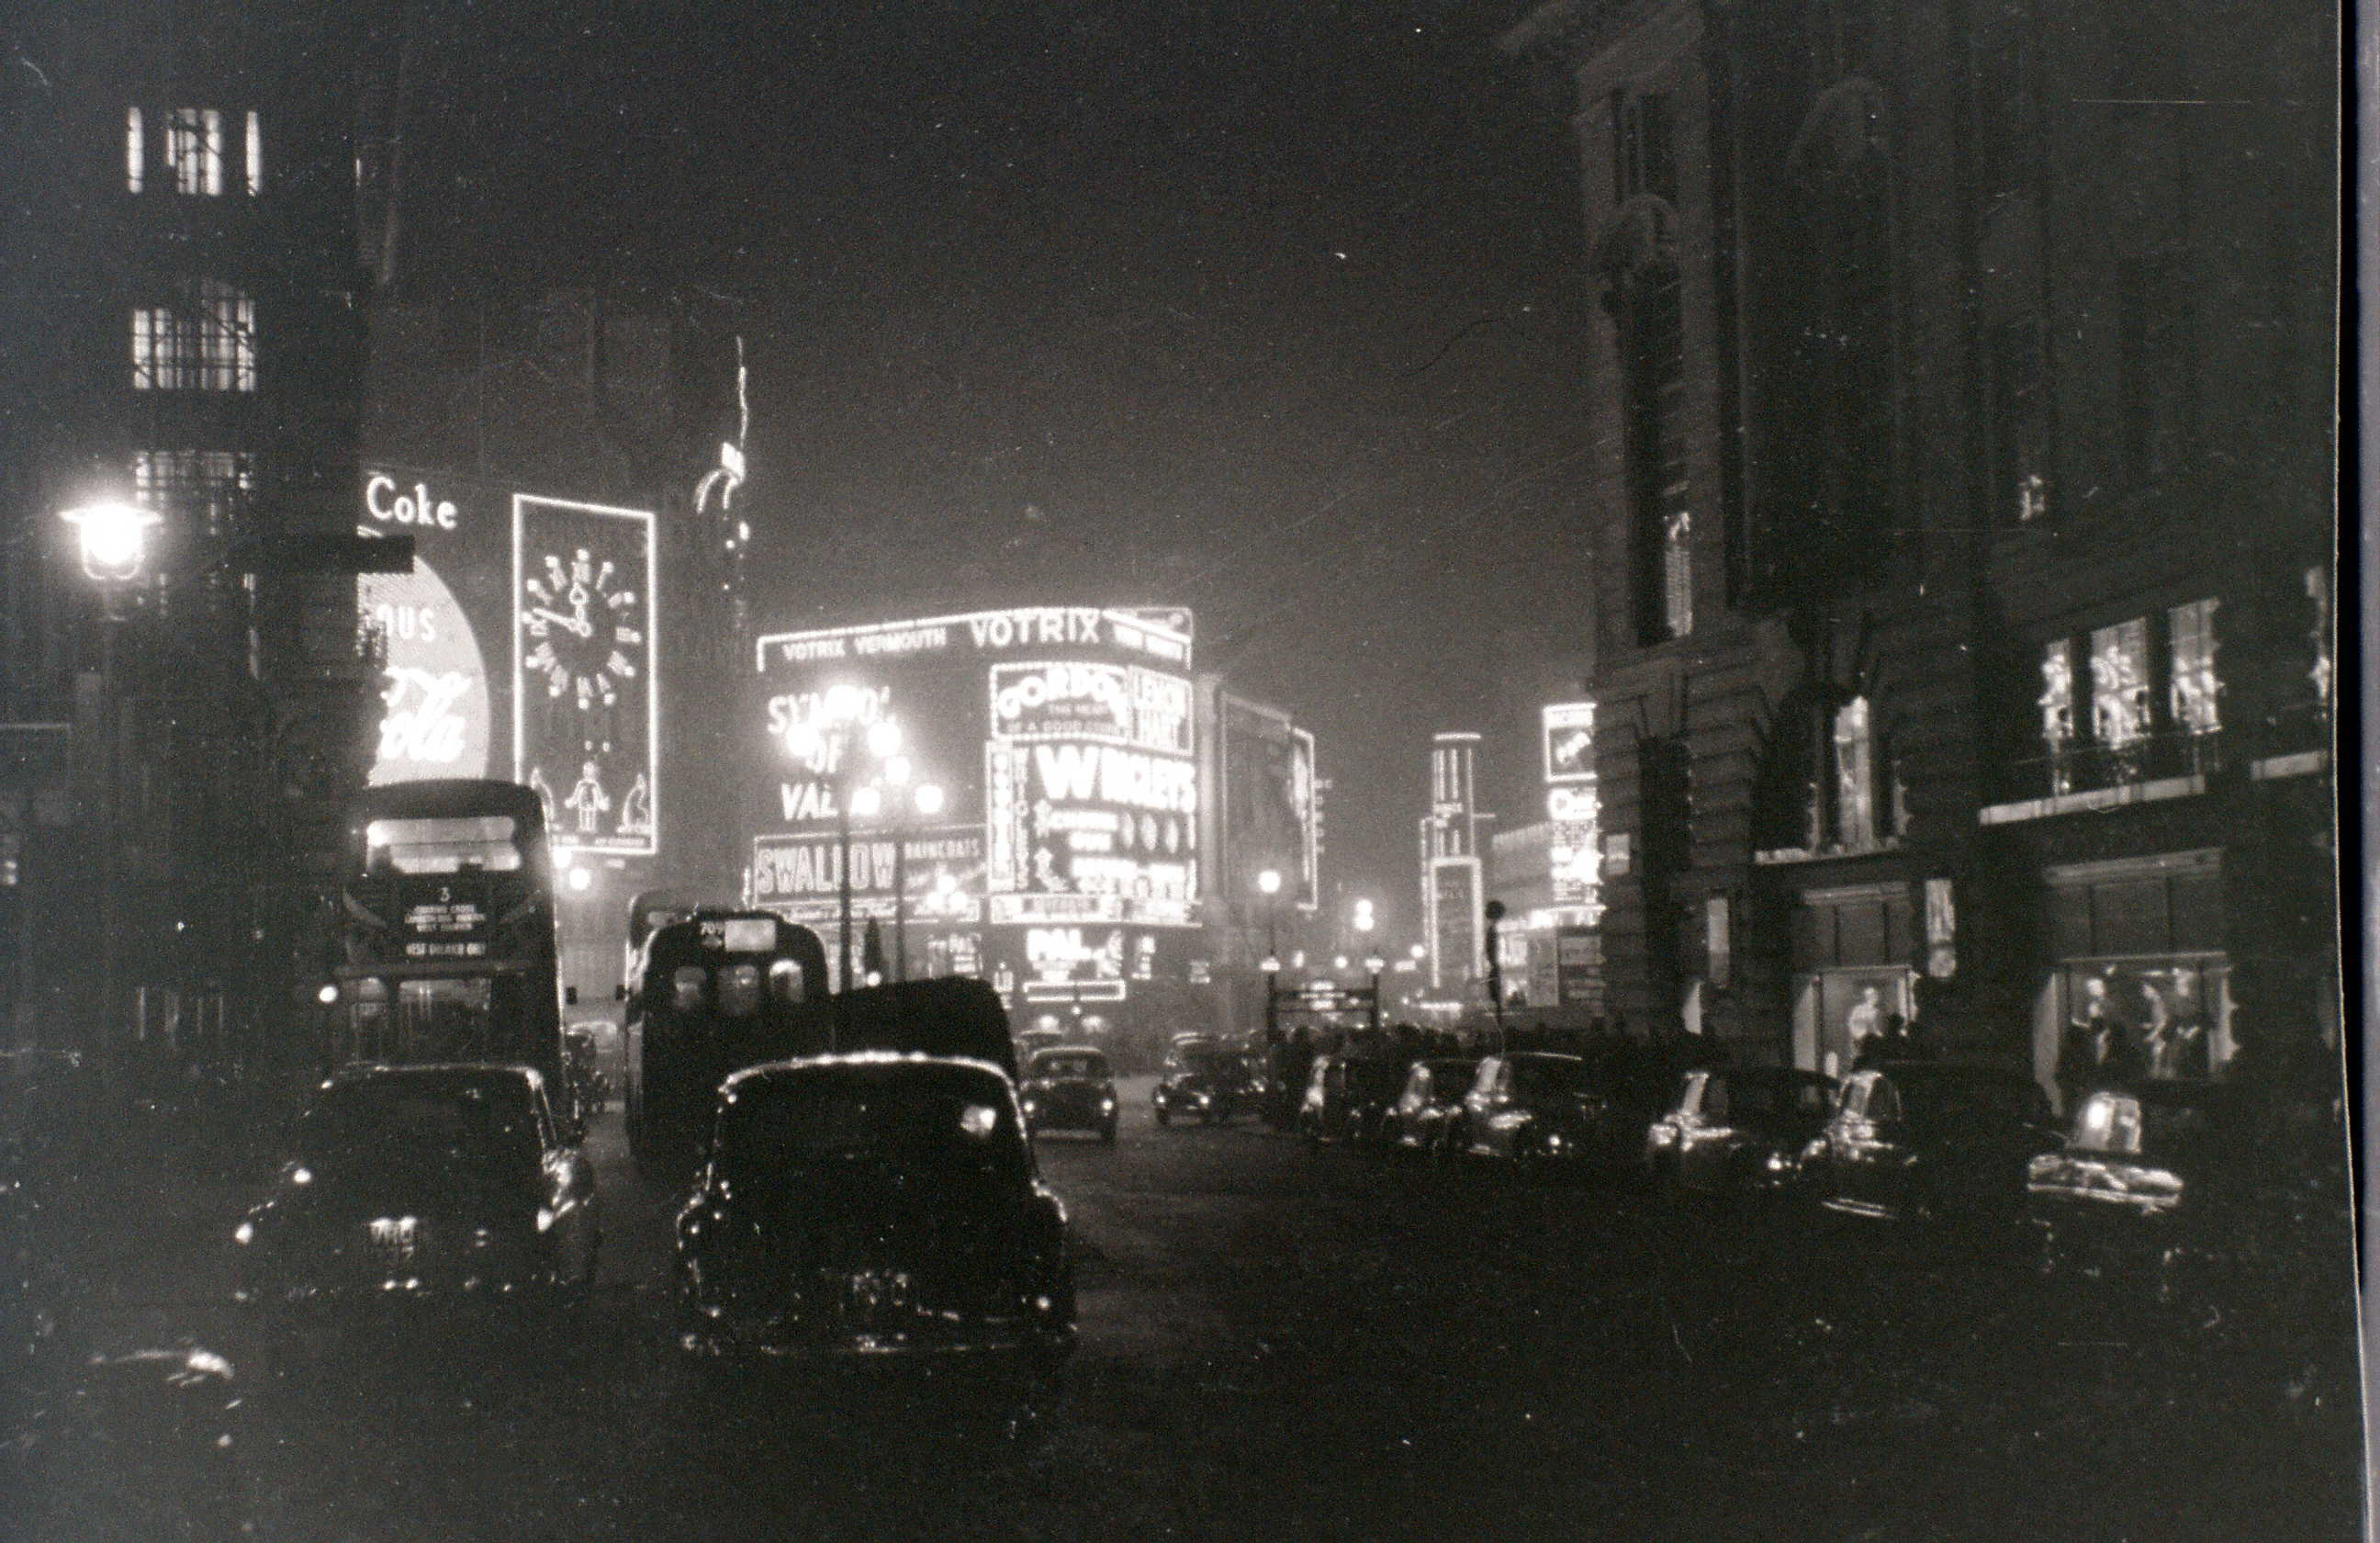 Piccadilly Circus, London, 5 November 1955